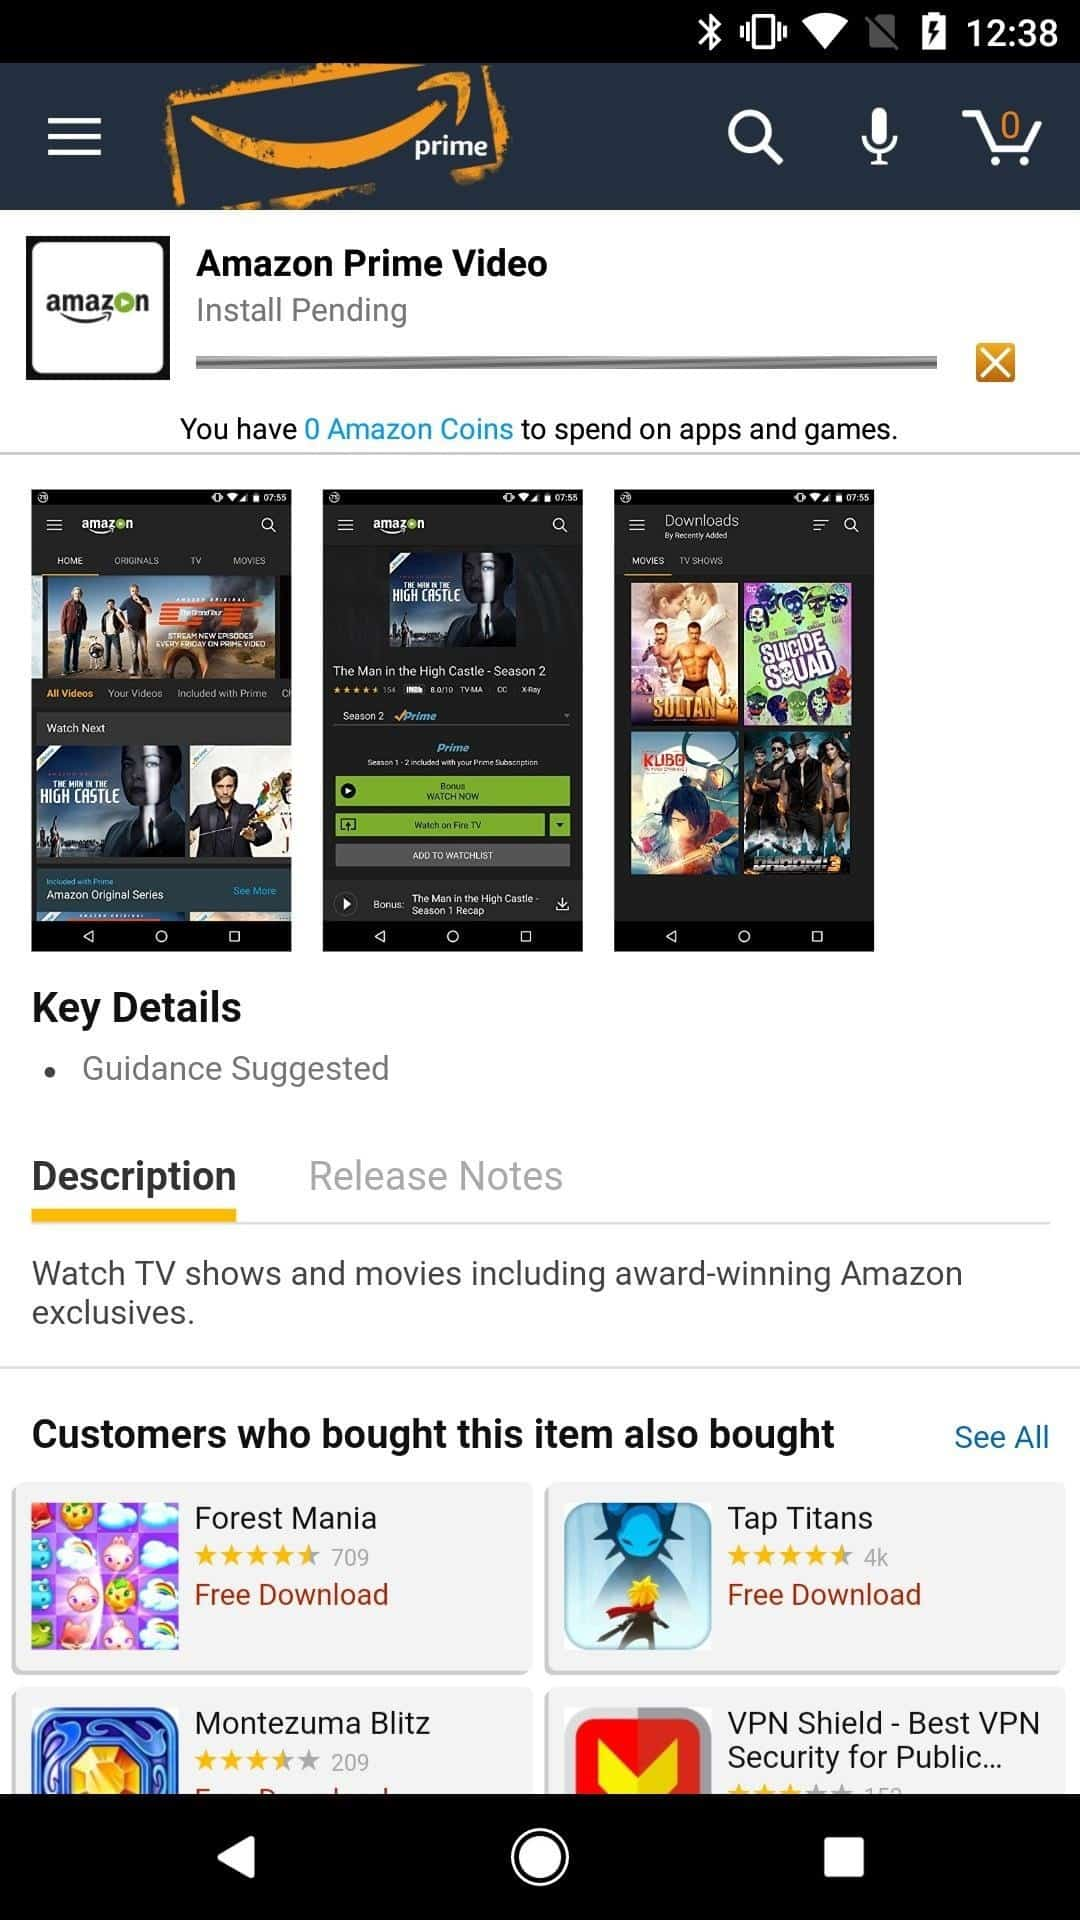 May approve android app to watch amazon prime movies Sunil,the